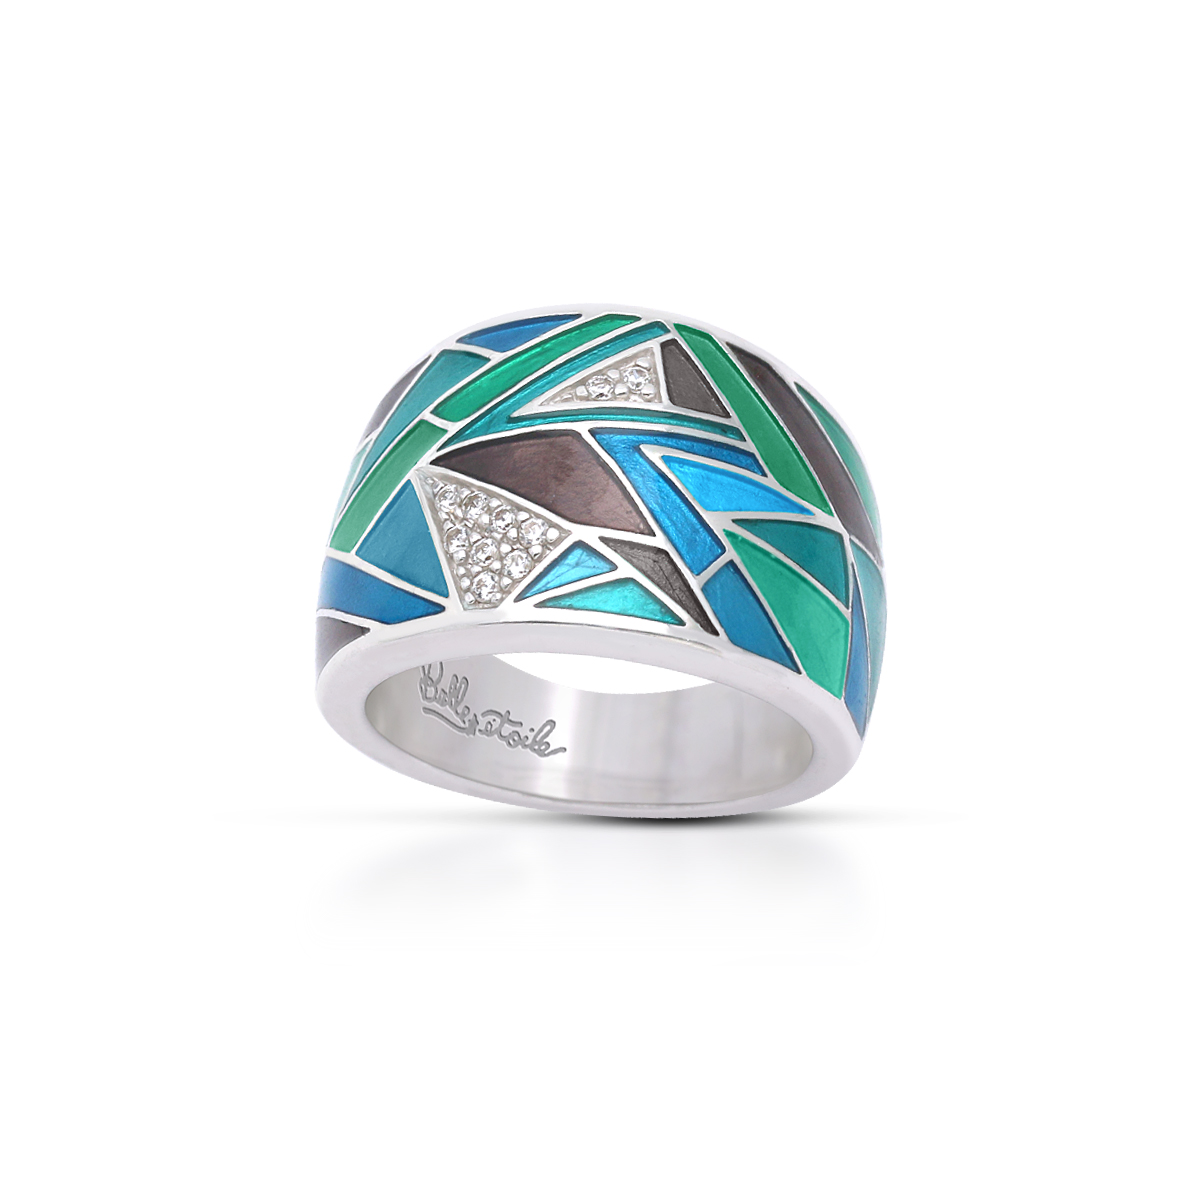 Belle Etoile - 2020-07-30-17-36-40_Chromatica_Blue_and_Teal_Ring_01022010201.jpg - brand name designer jewelry in Morgantown, West Virginia